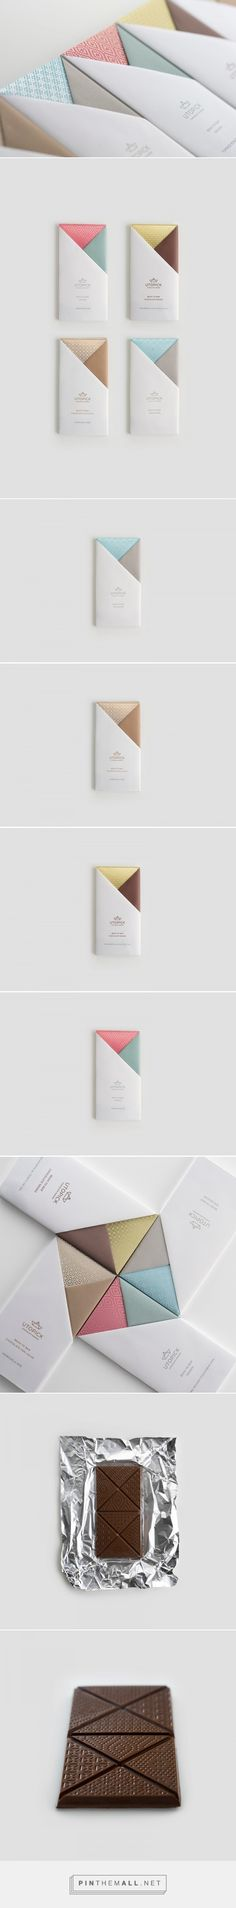 Utopick Chocolates packaging design by Lavernia & Cienfuegos - http://www.packagingoftheworld.com/2017/04/utopick-chocolates.html